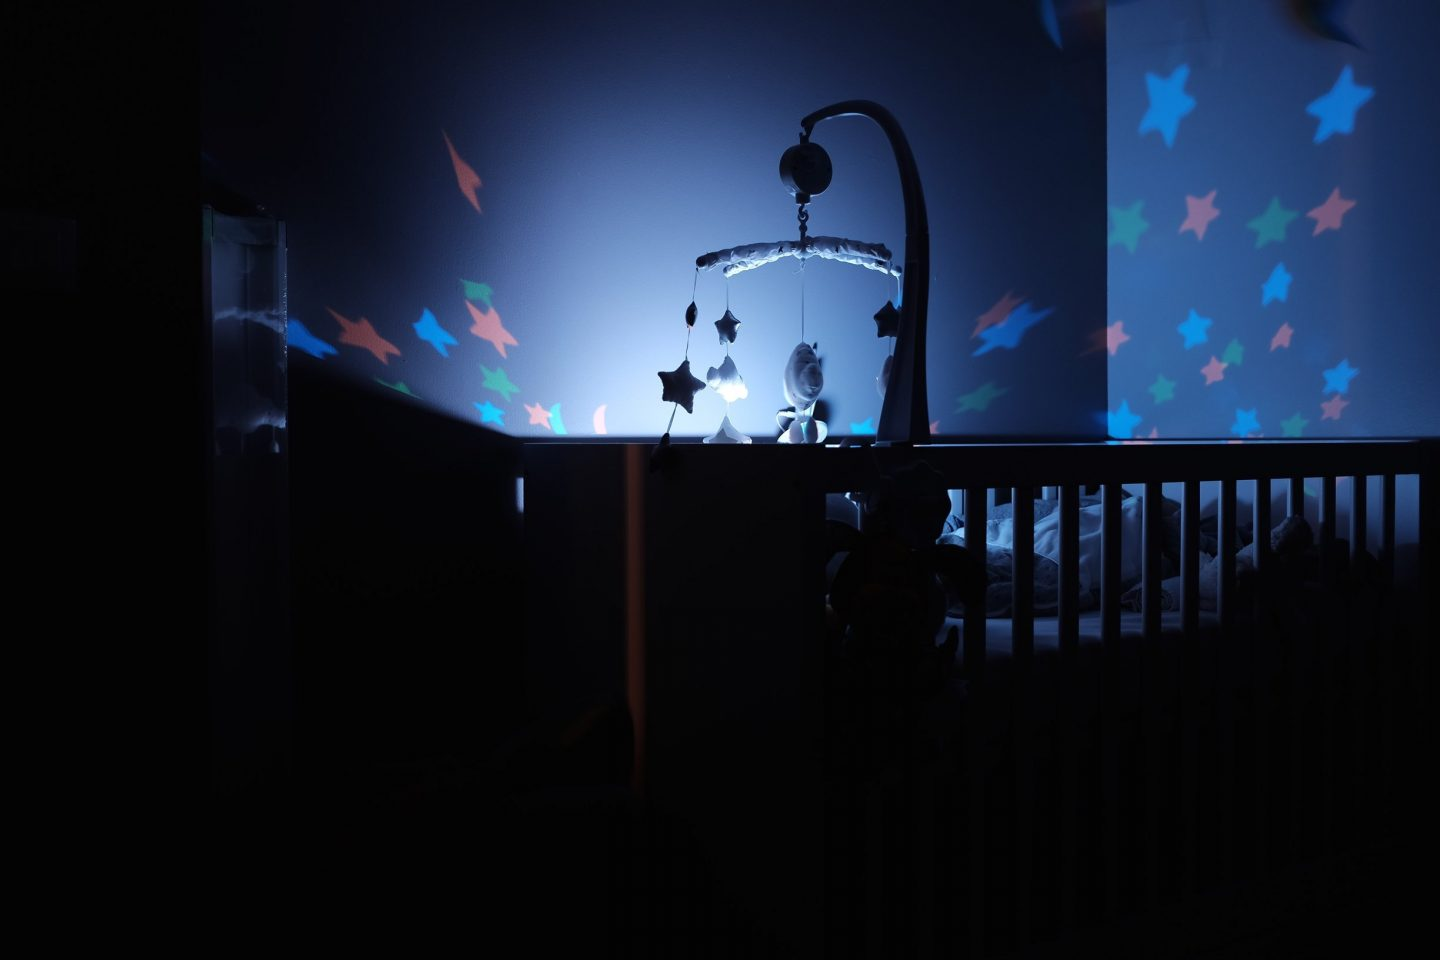 baby nursery at night mobile nightlight